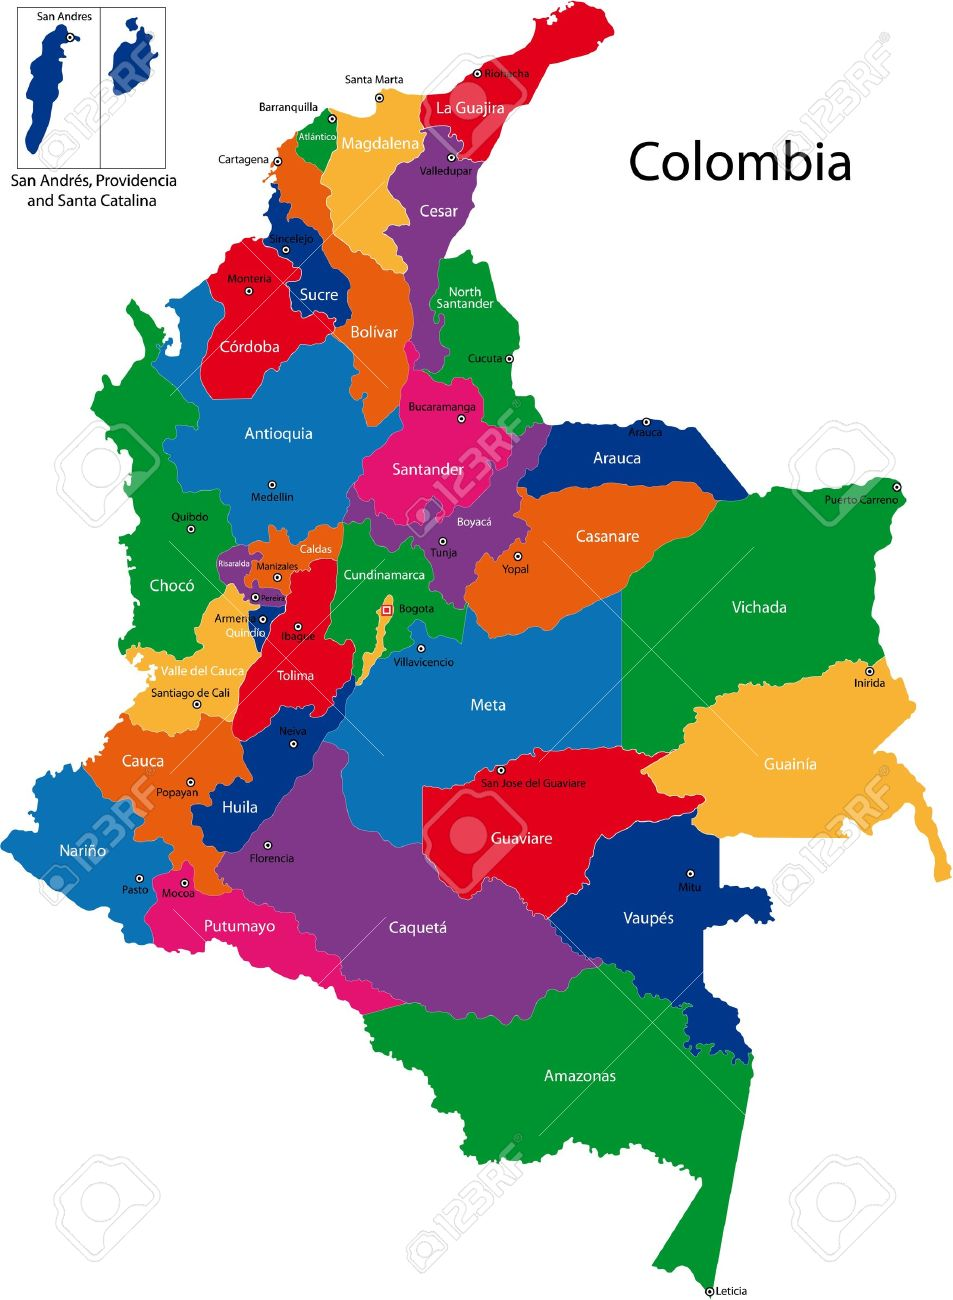 Map Of The Republic Of Colombia With The Regions Colored In Bright - Colombia map